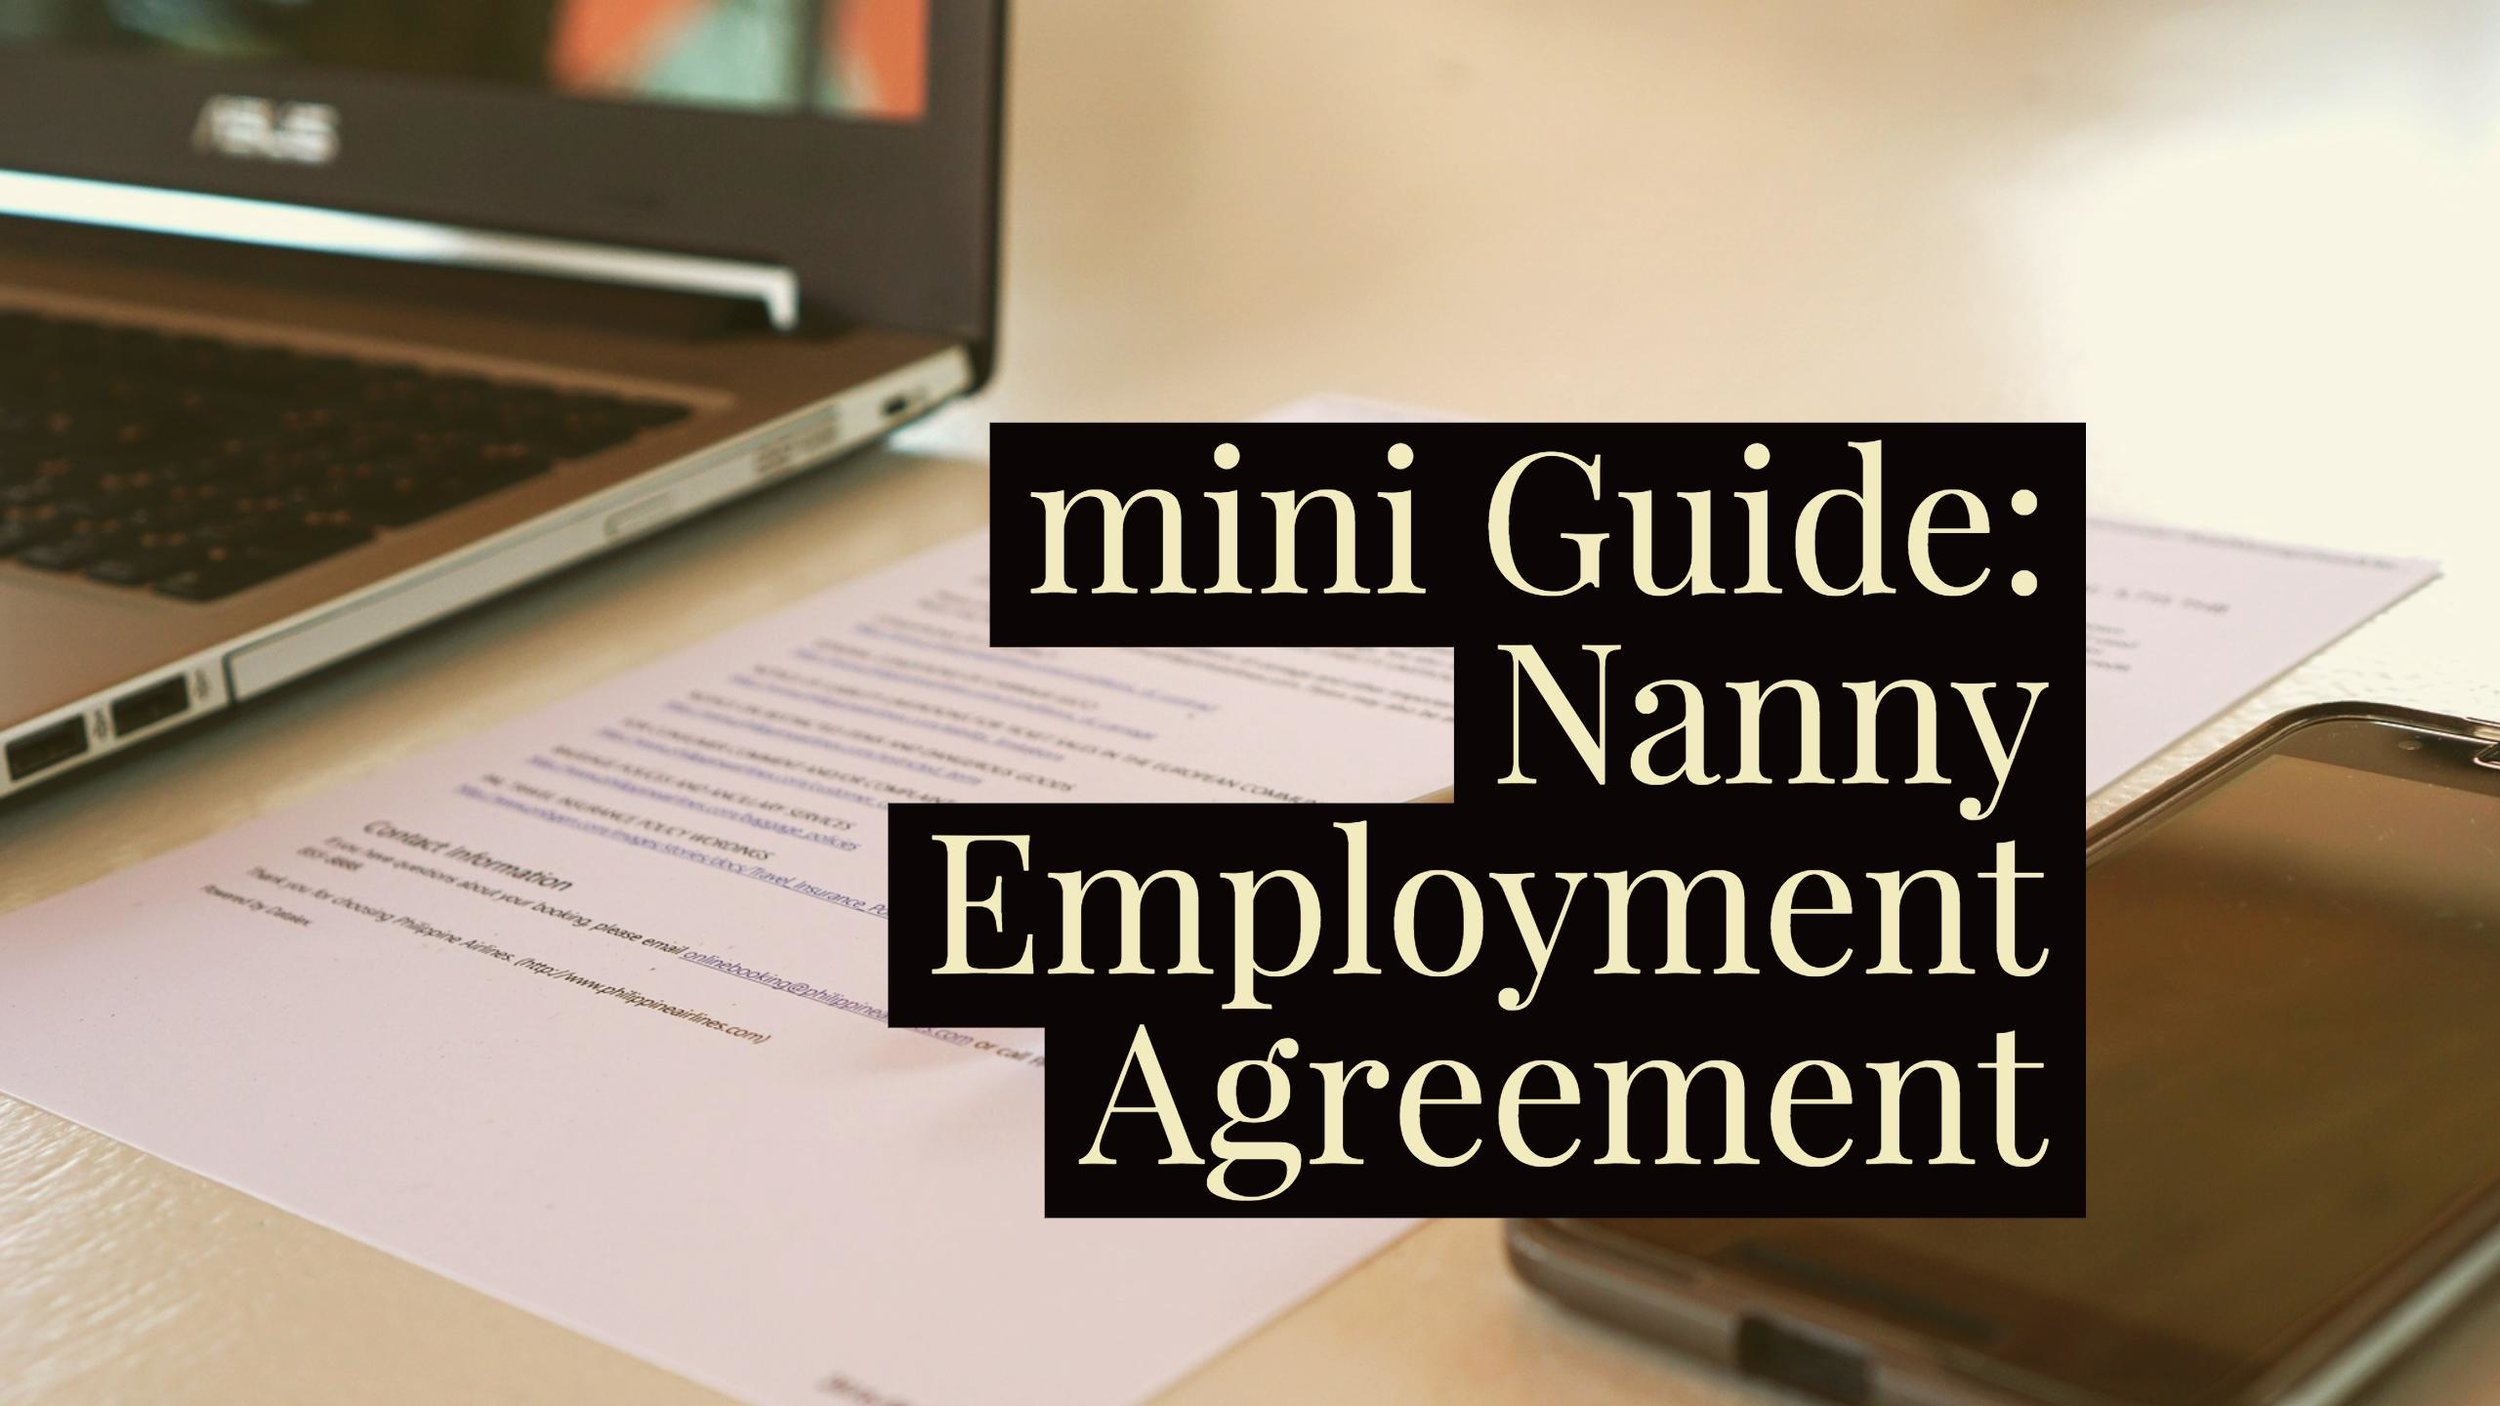 Nanny Employment Agreement